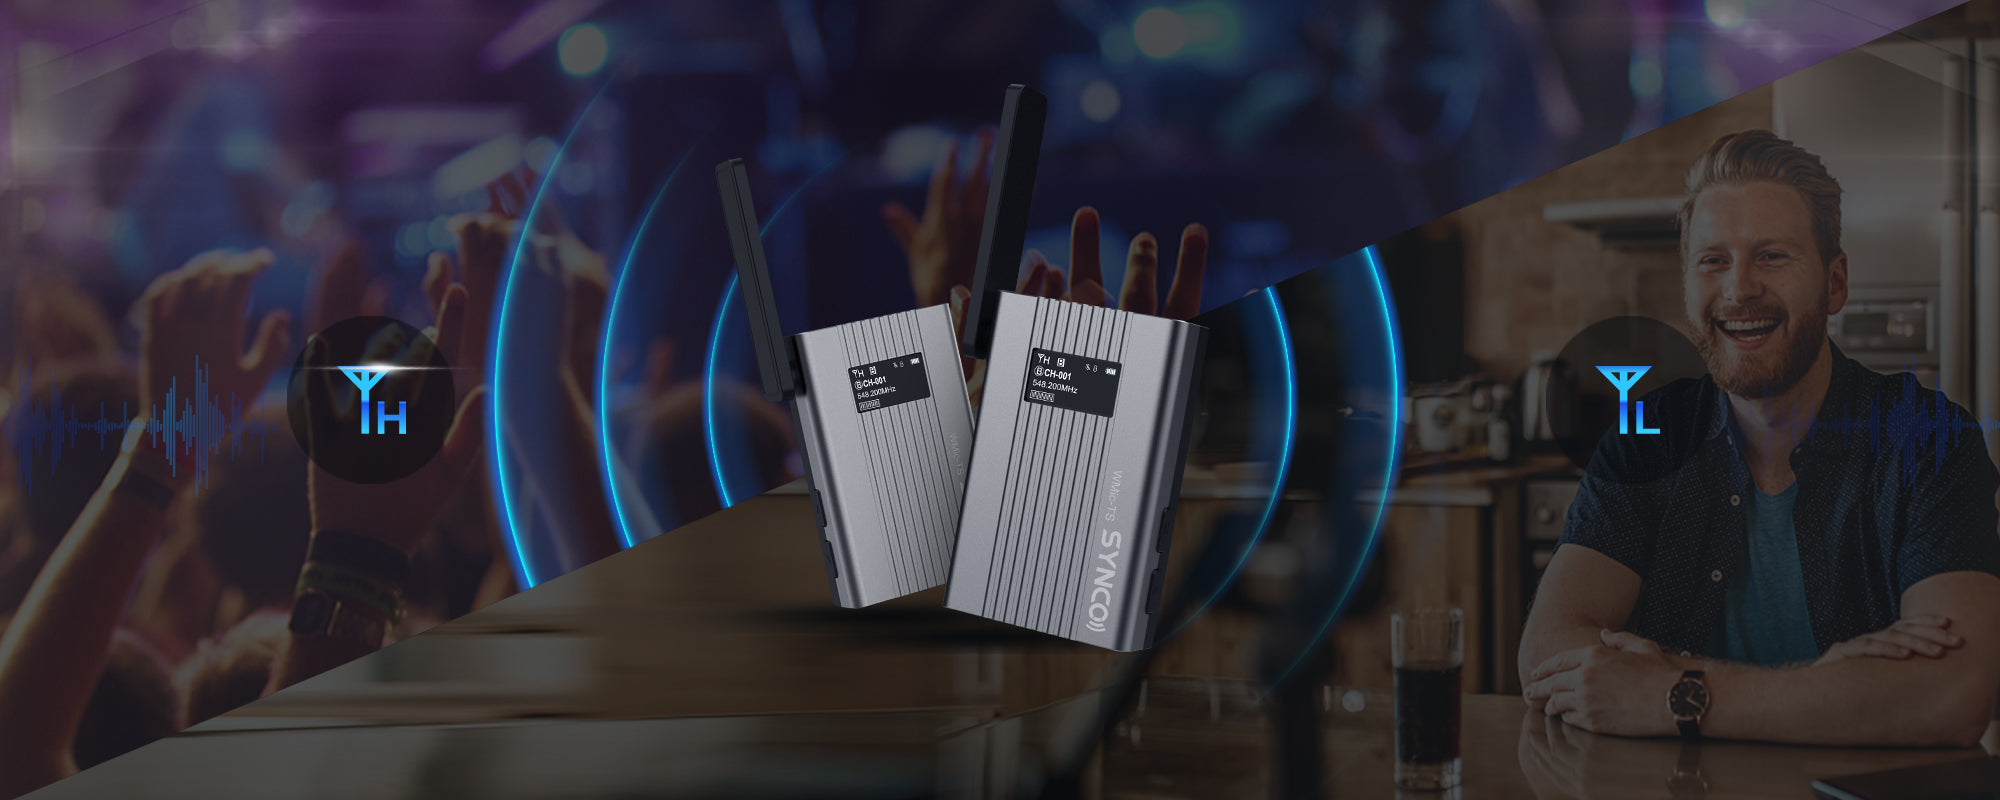 SYNCO WMic-TS Selectable Output Power for Specific Conditions